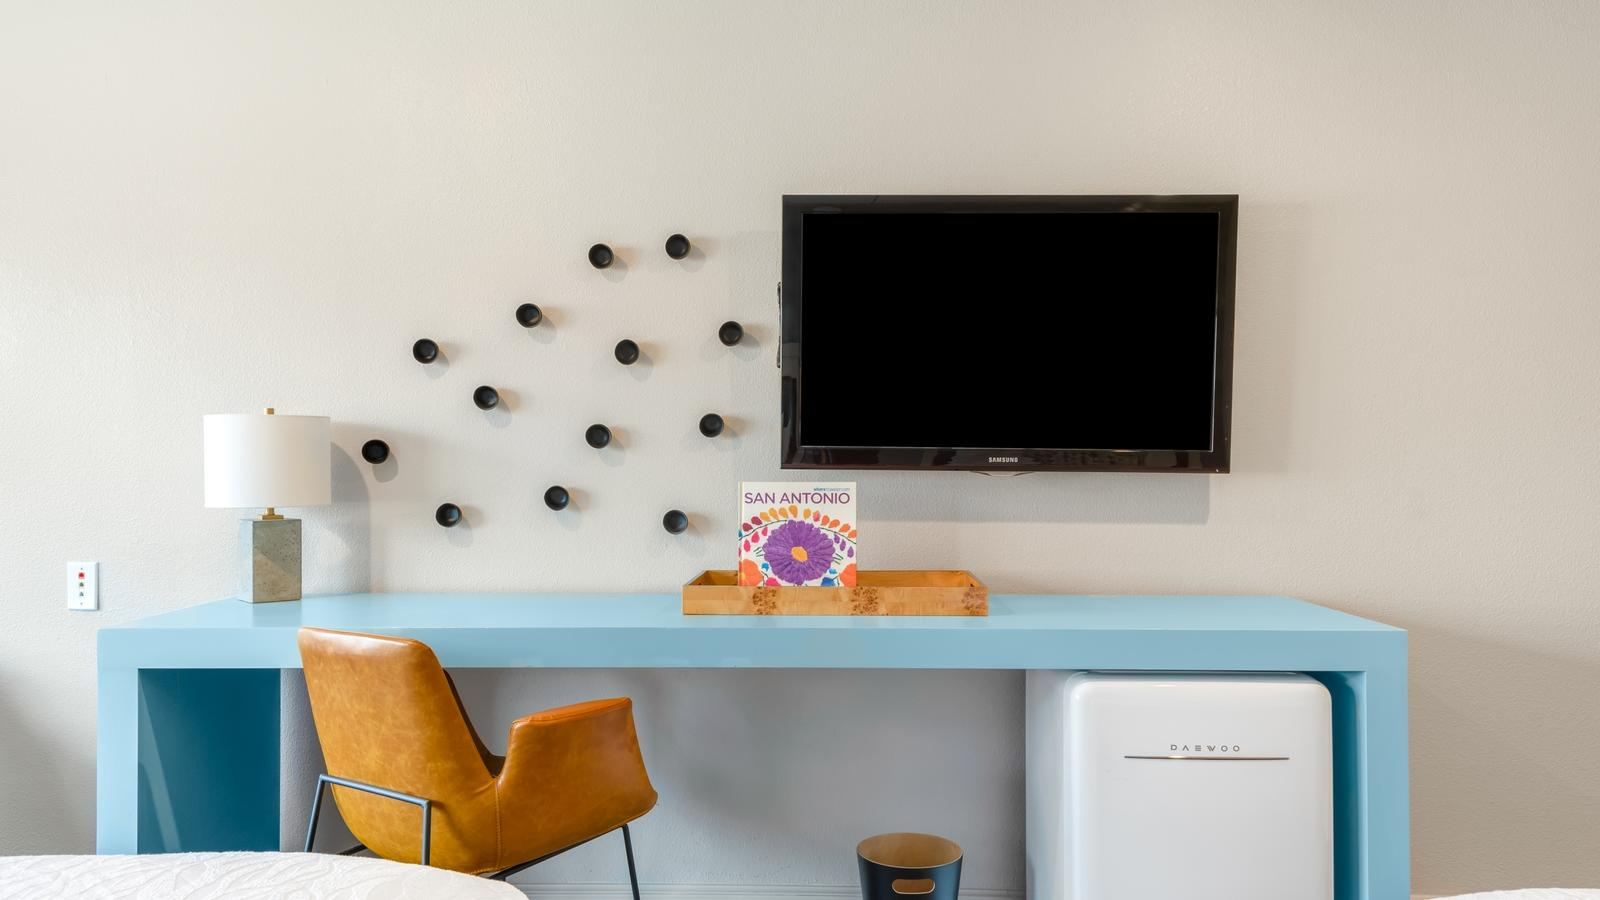 Desk with TV mounted on wall and mini fridge